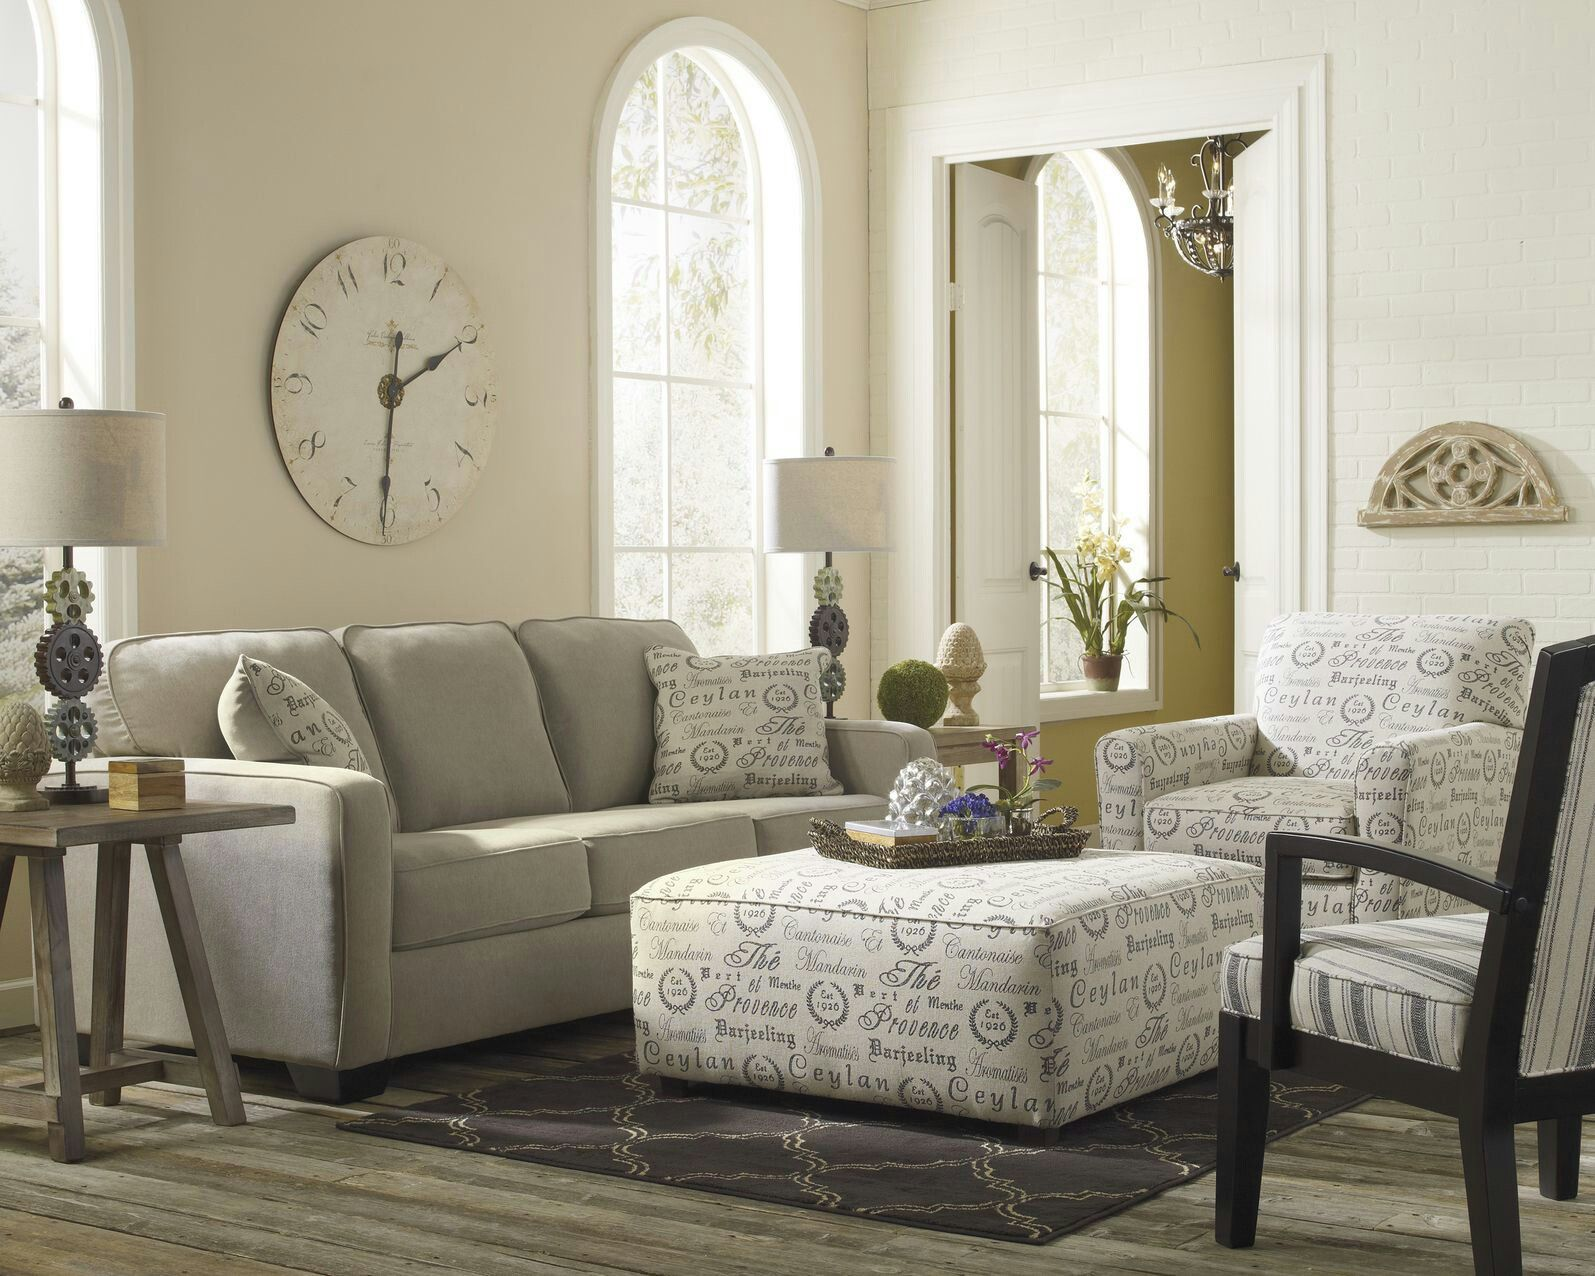 ottoman for living room%0A OTTOMAN COFFEE TABLE Light toned living room stands over grey hardwood  flooring  with neutral grey sofa next to textpatterned white armchair and  matching